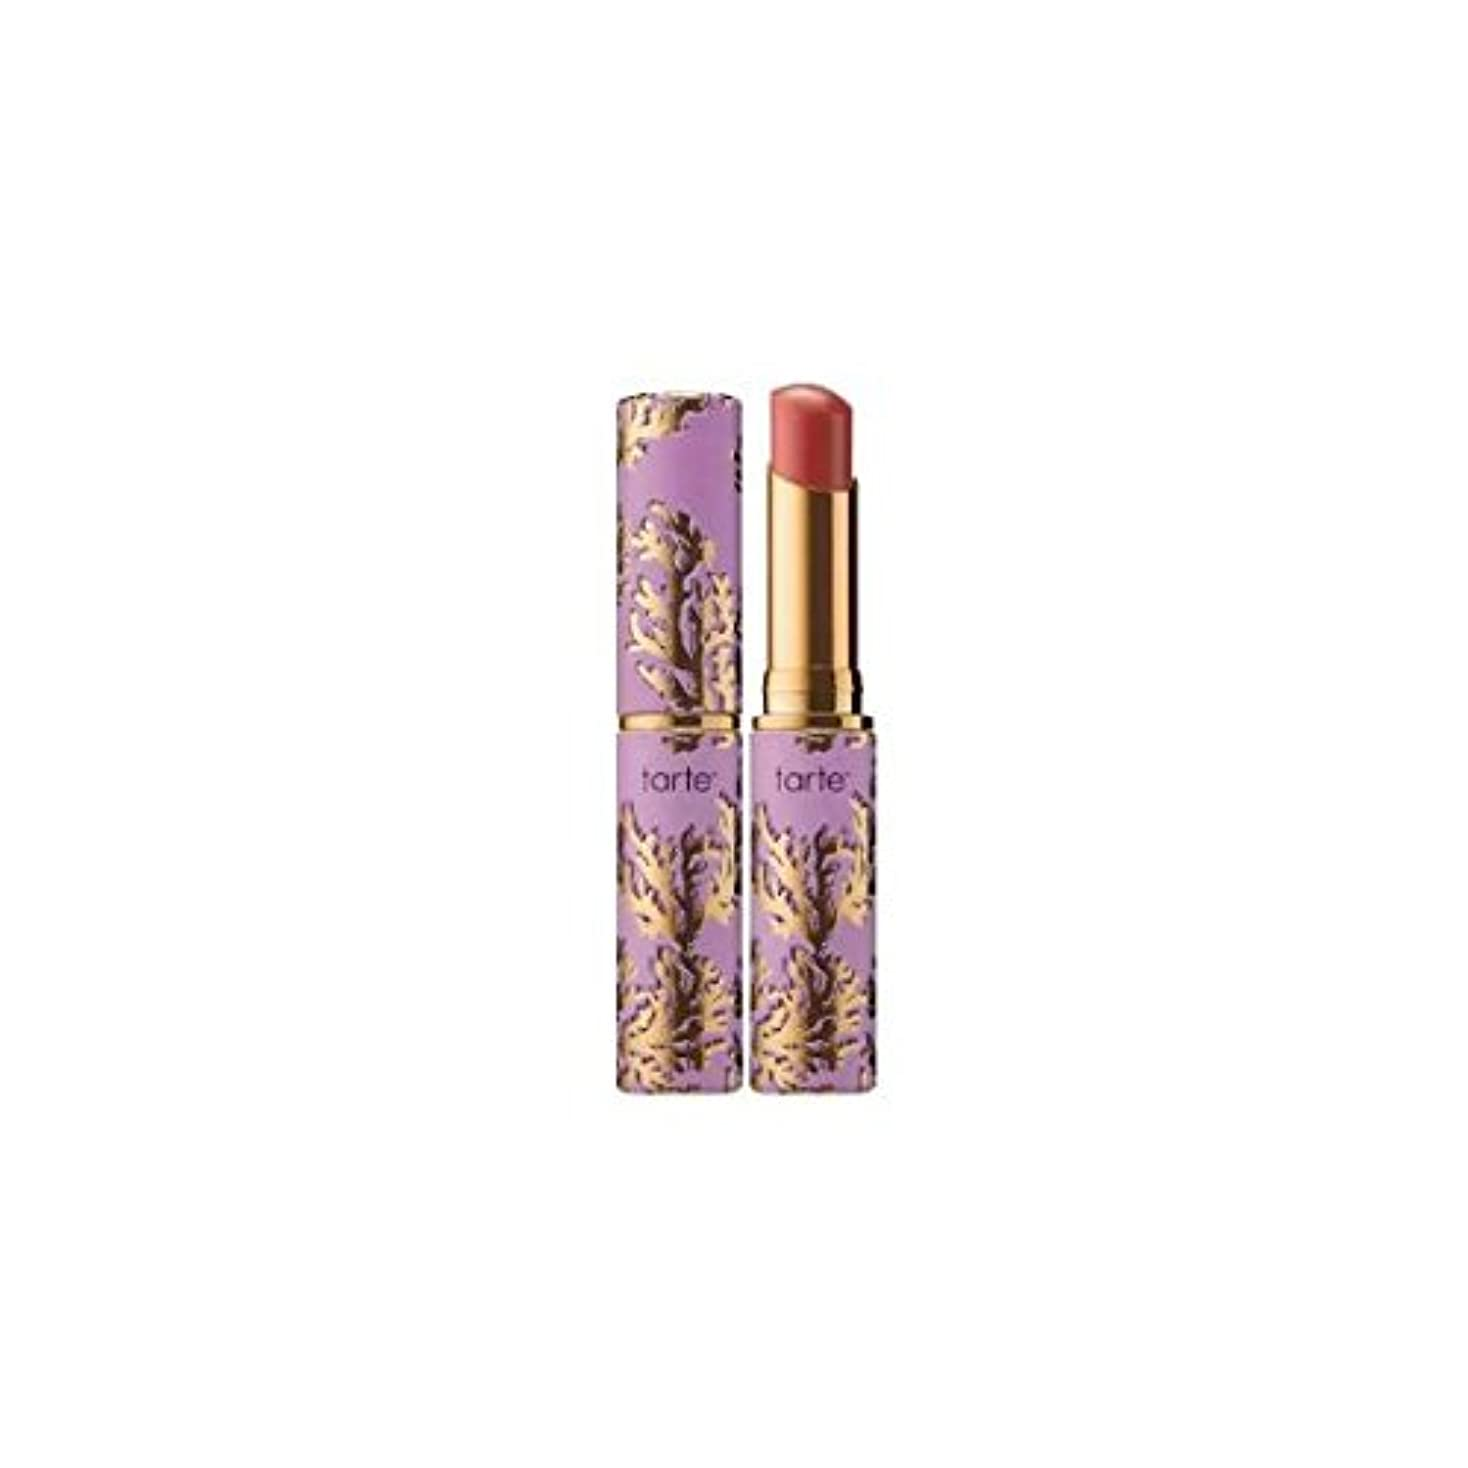 tarteタルト リップ Quench Lip Rescue - Rainforest of the Sea Collection High Shine finish